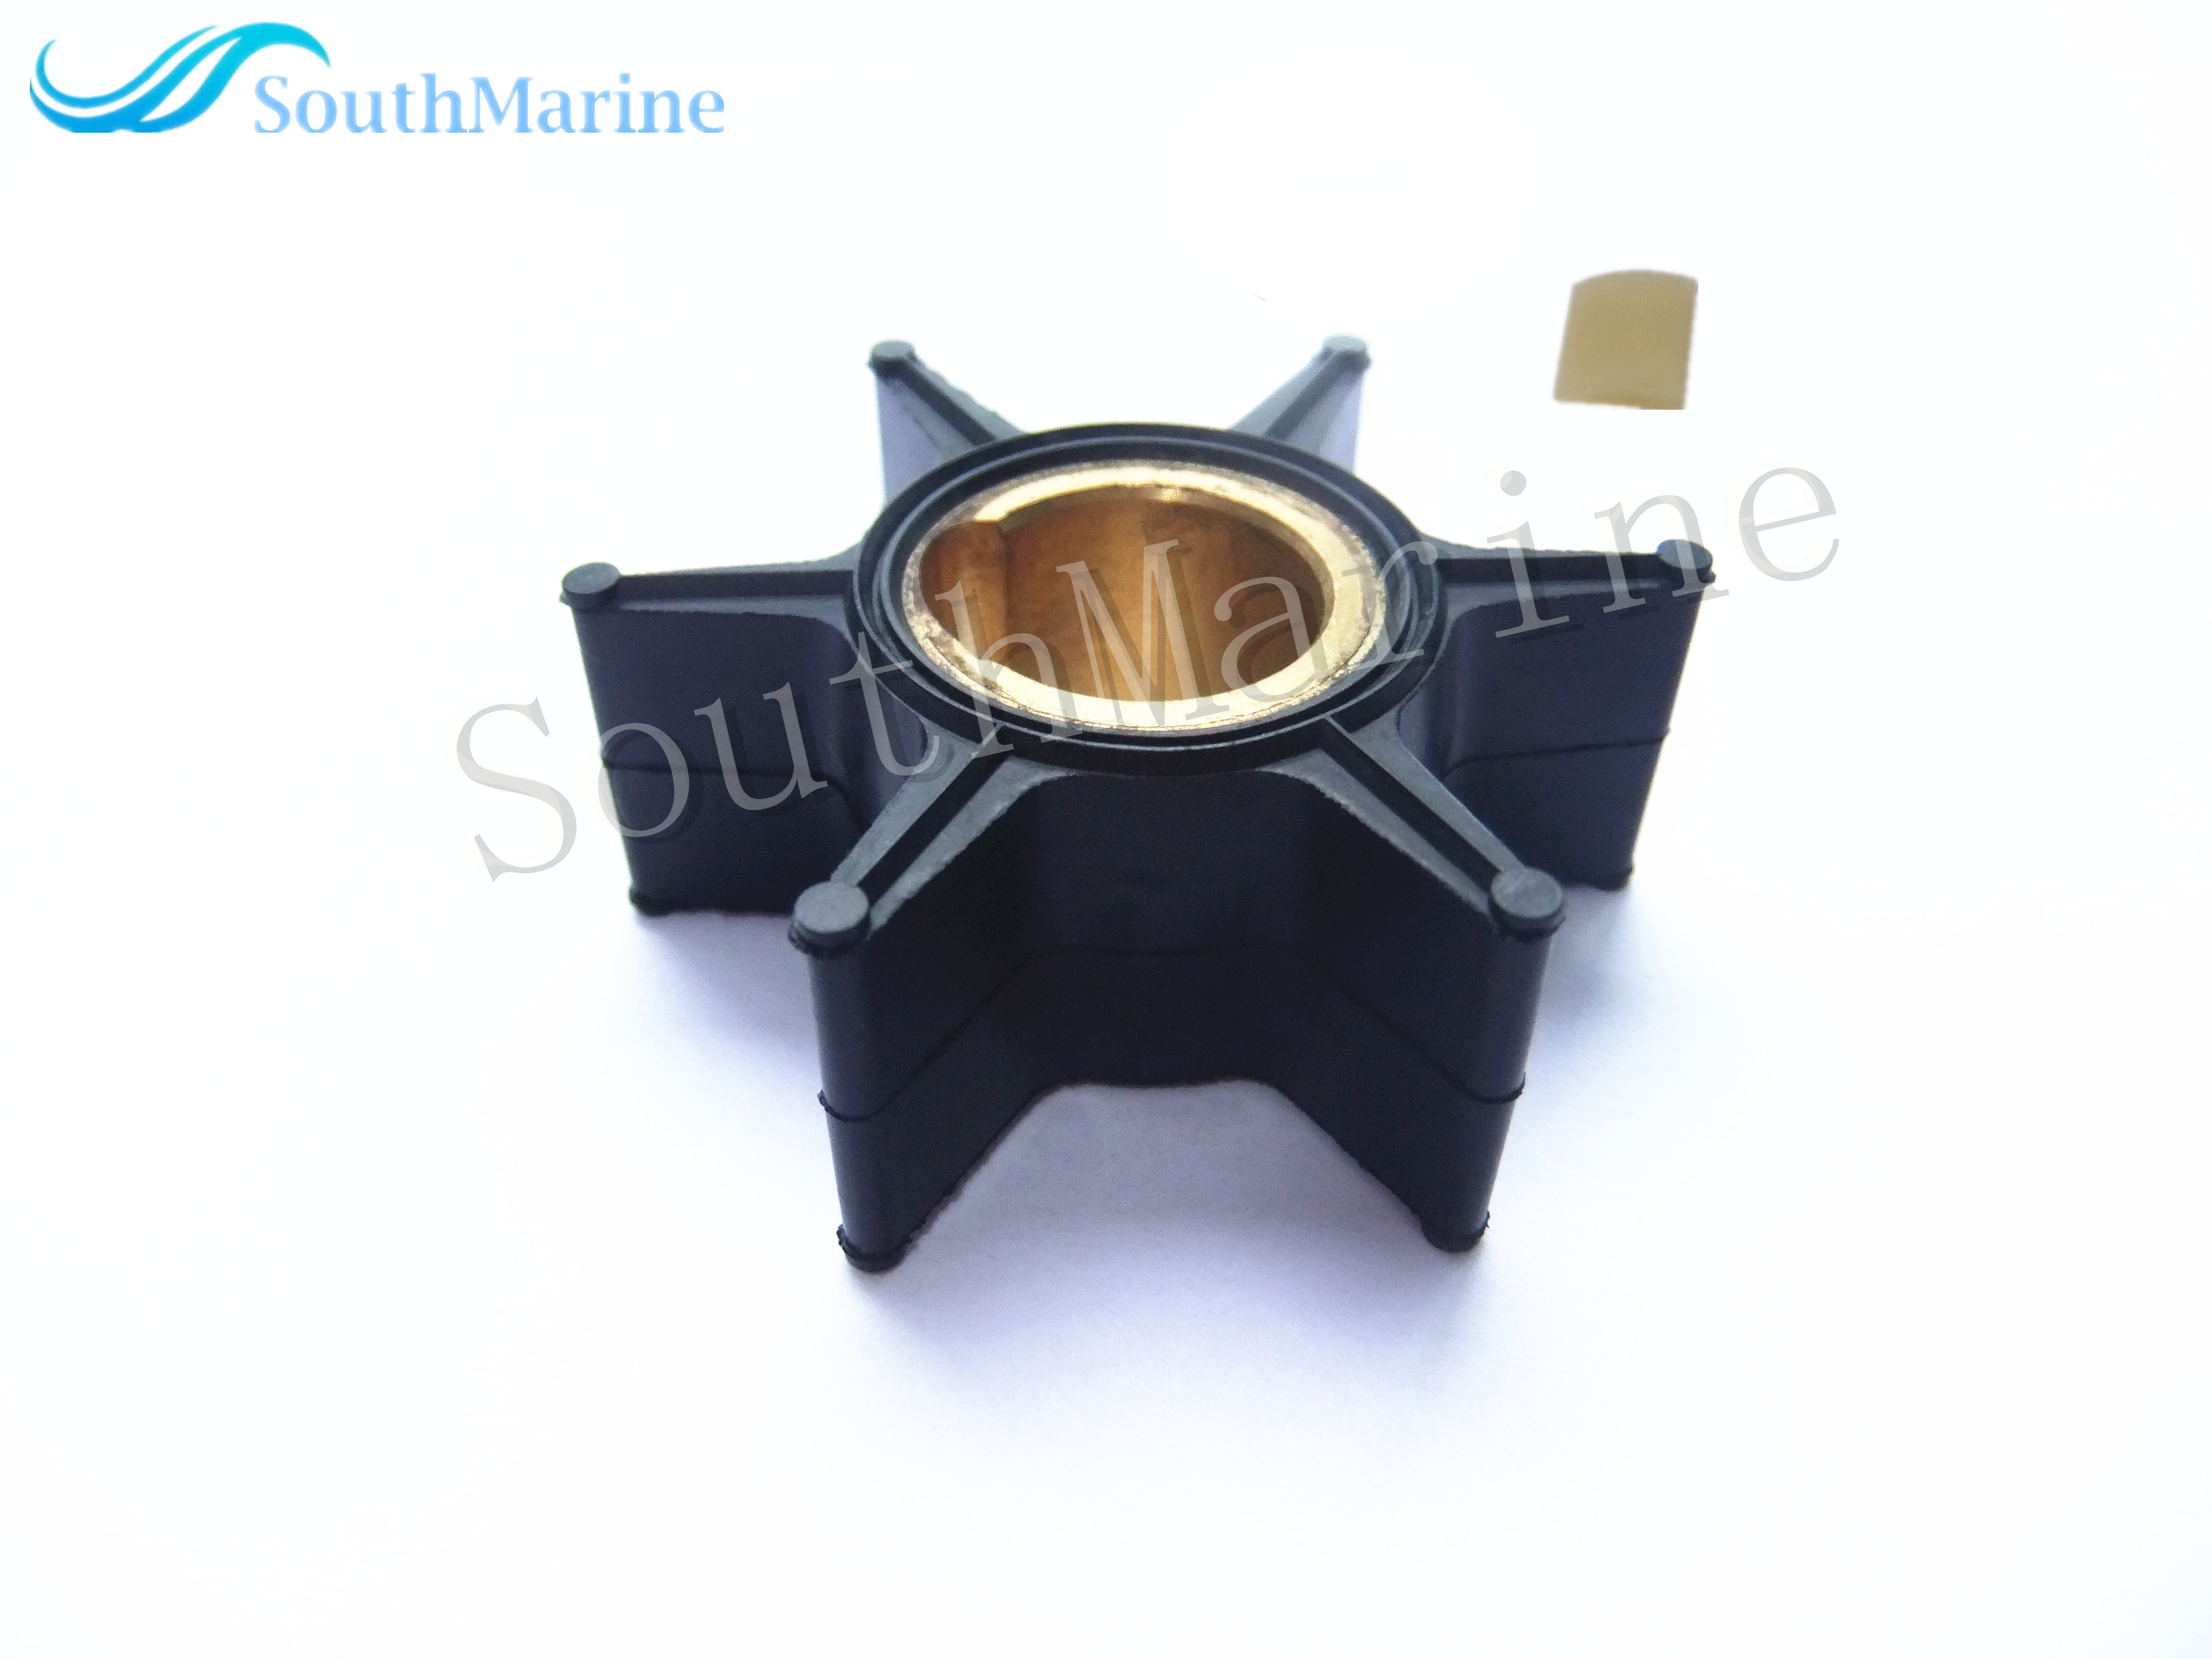 395289 395265 Boat Engine Impeller for Johnson Evinrude OMC  20HP 25HP 28HP 30HP 35HP Outboard Motor  ,Free Shipping